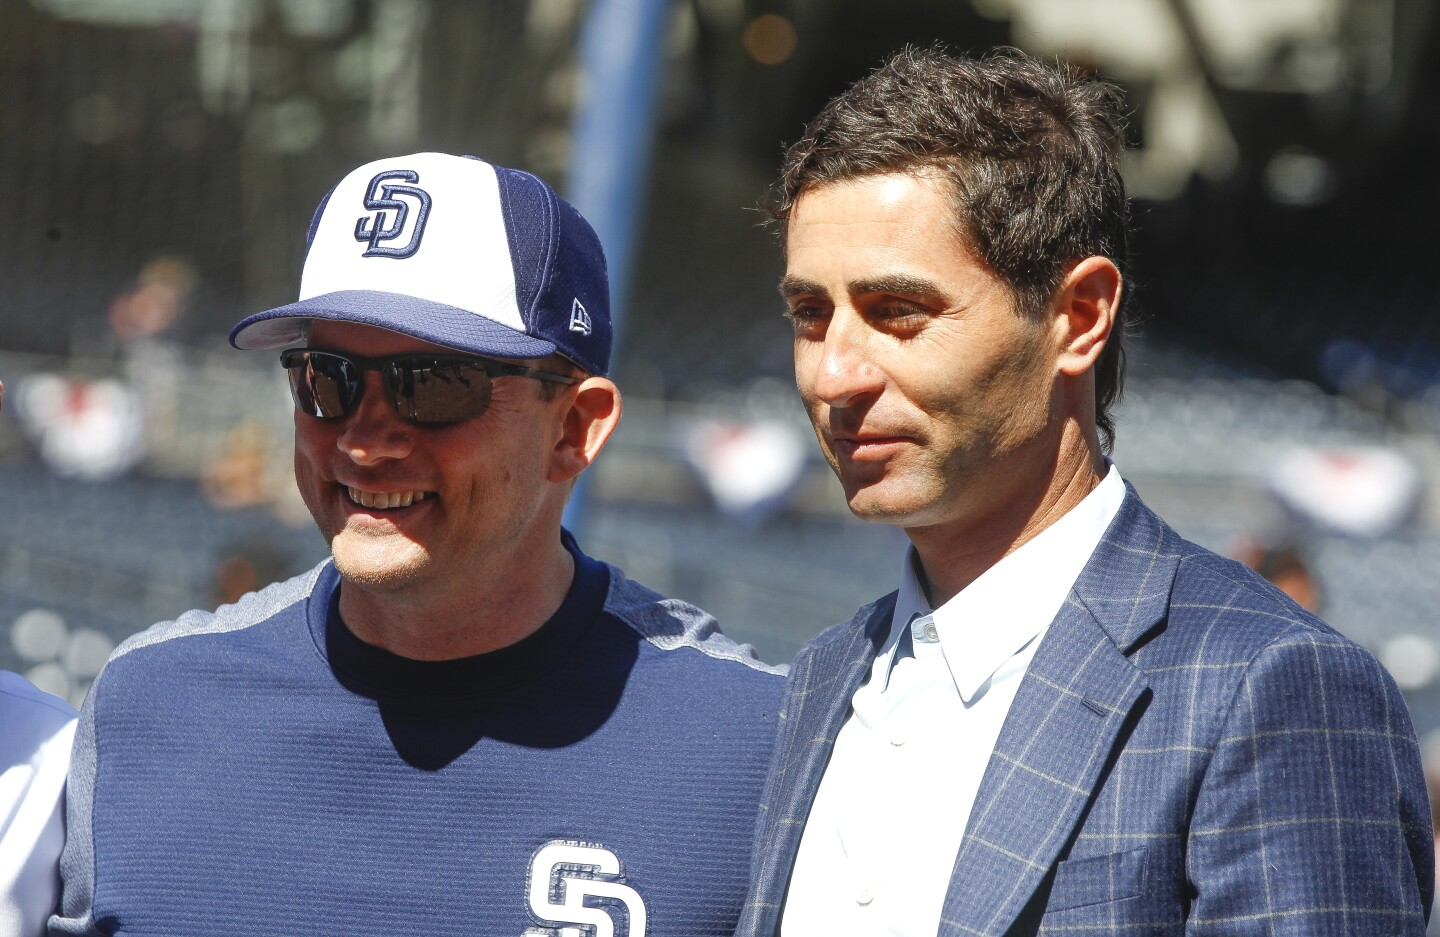 Padres manager Andy Green, left, and Padres general manager A.J. Preller before the start of the Padres' game against the Giants during the Padres home opener at Petco Park in San Diego on Thursday.